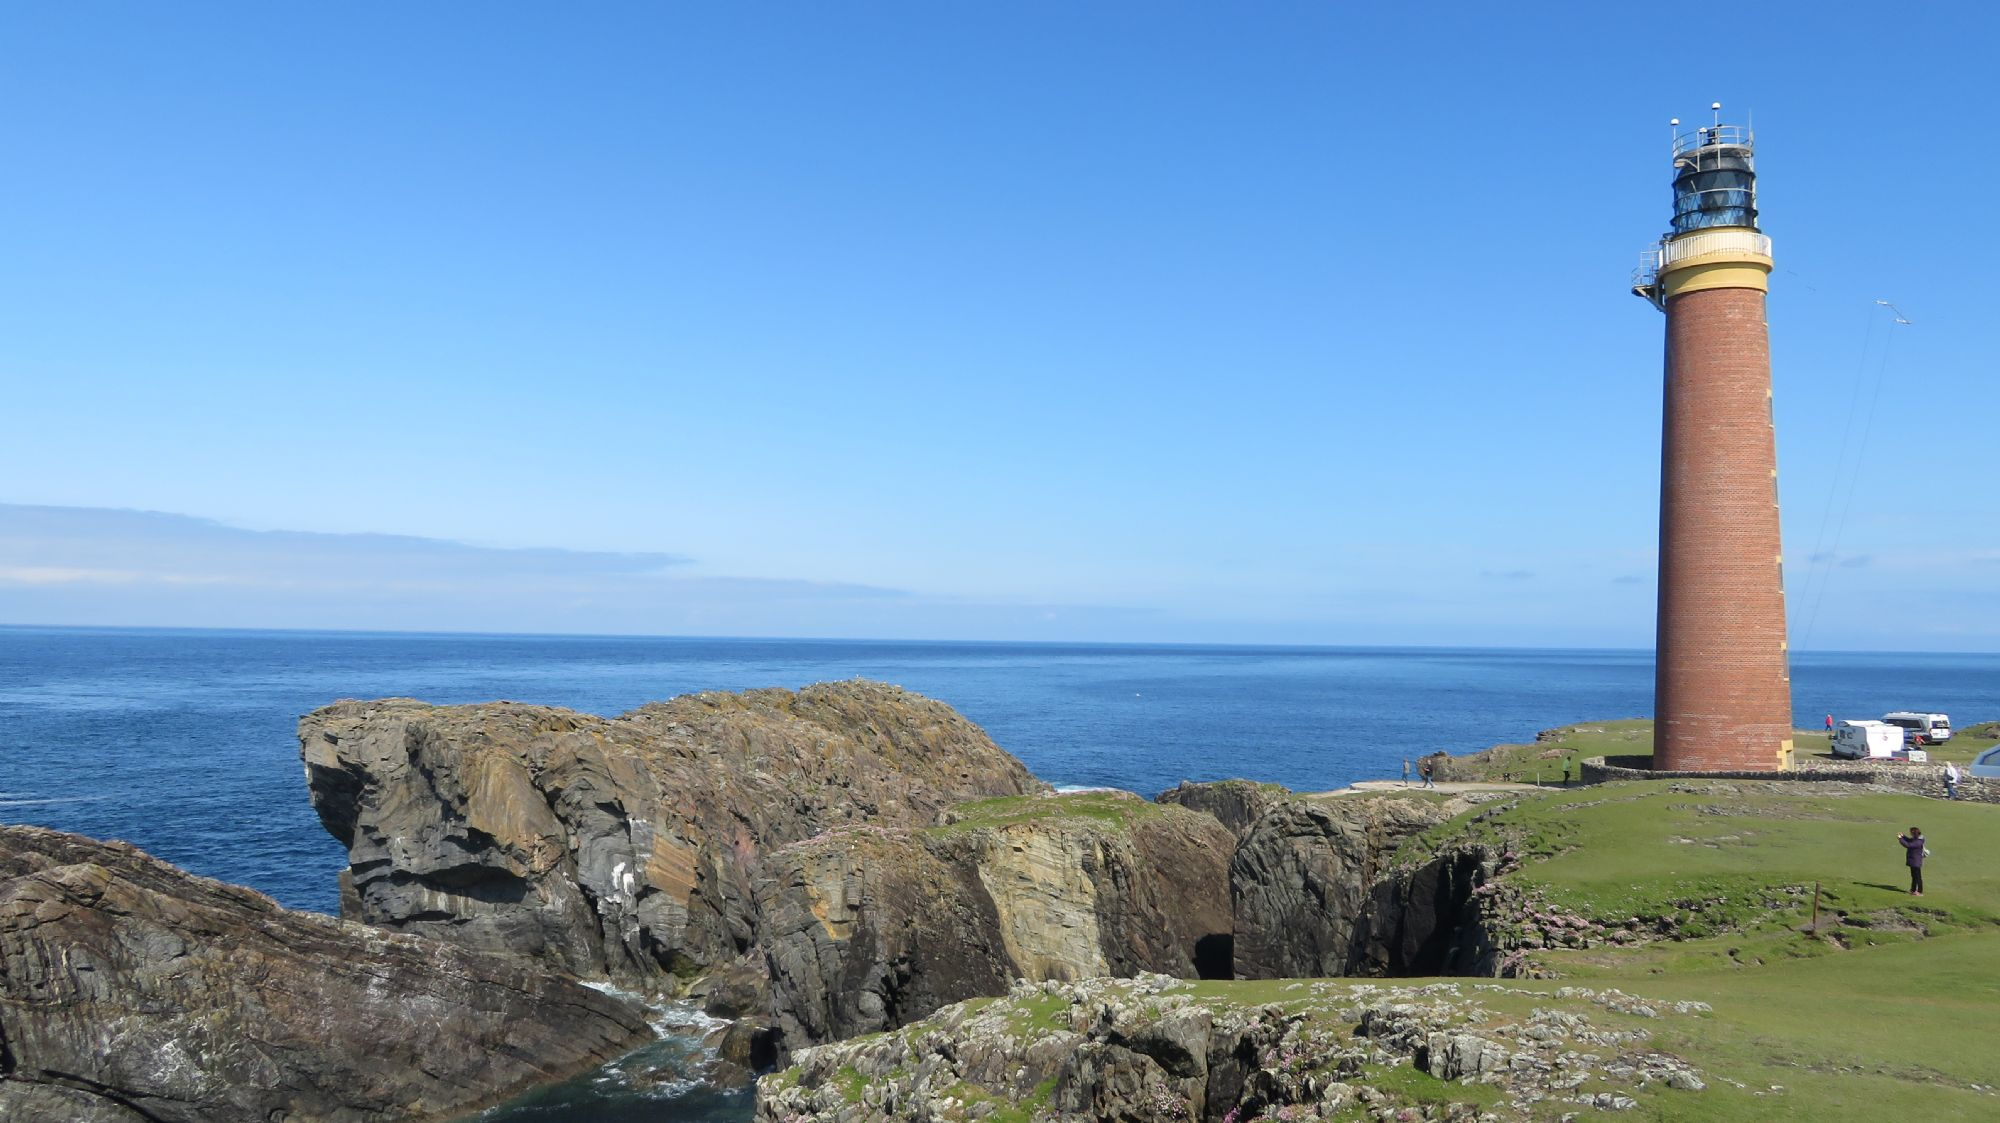 The Lighthouse, Butt of Lewis.